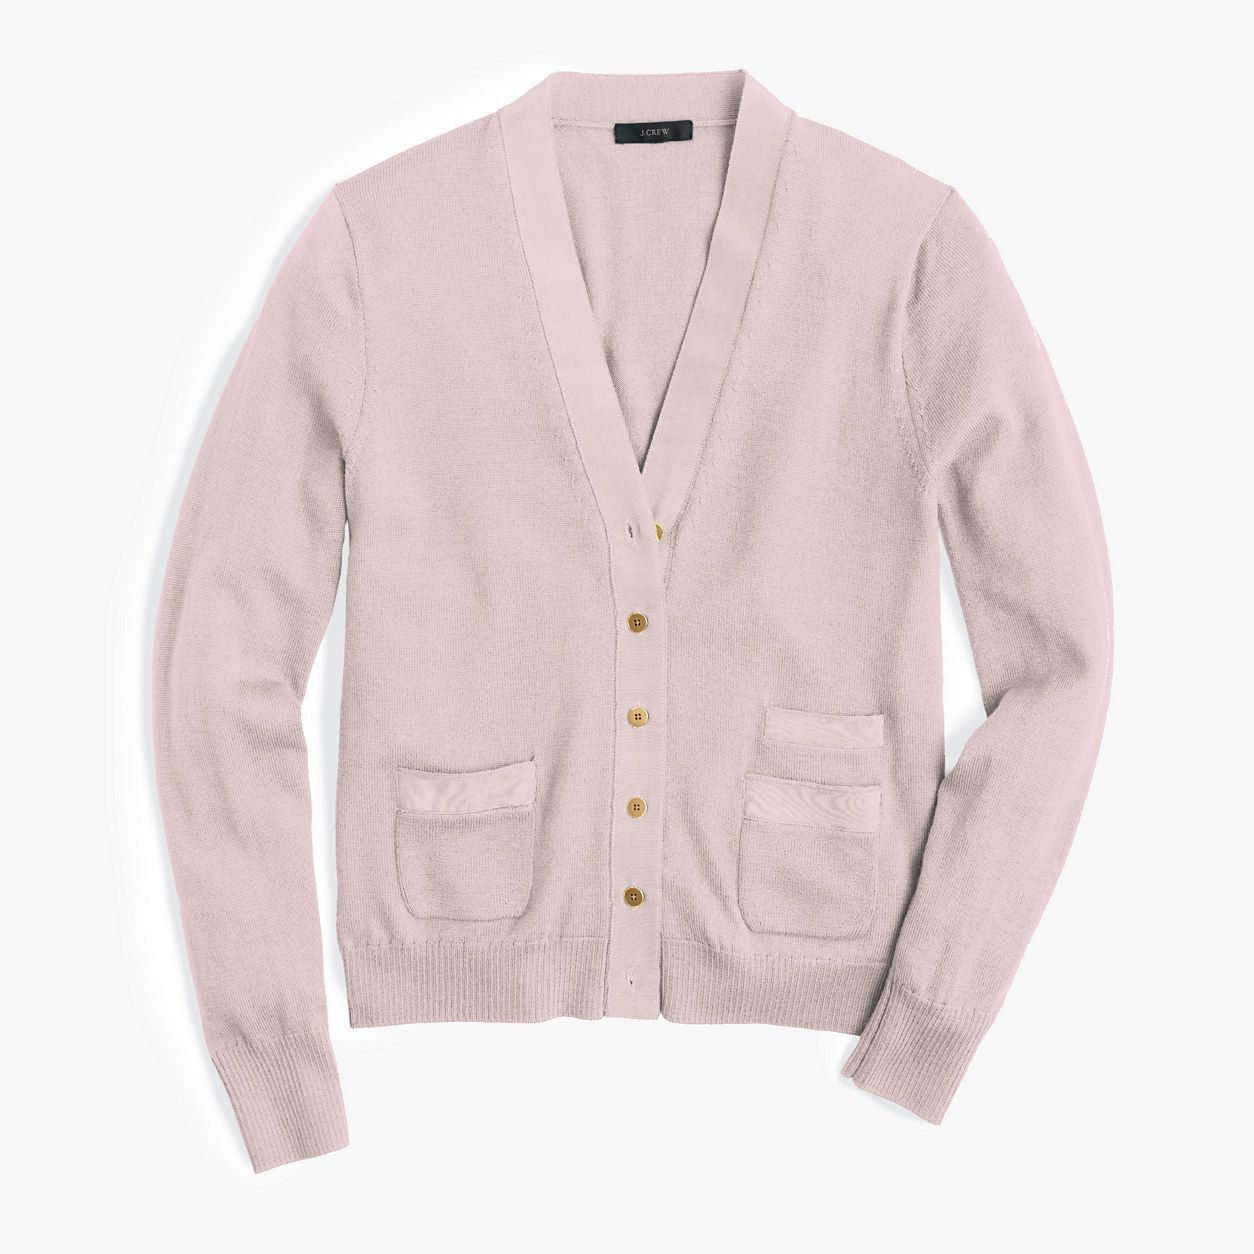 A classic cardigan sweater with double pockets and polished ...